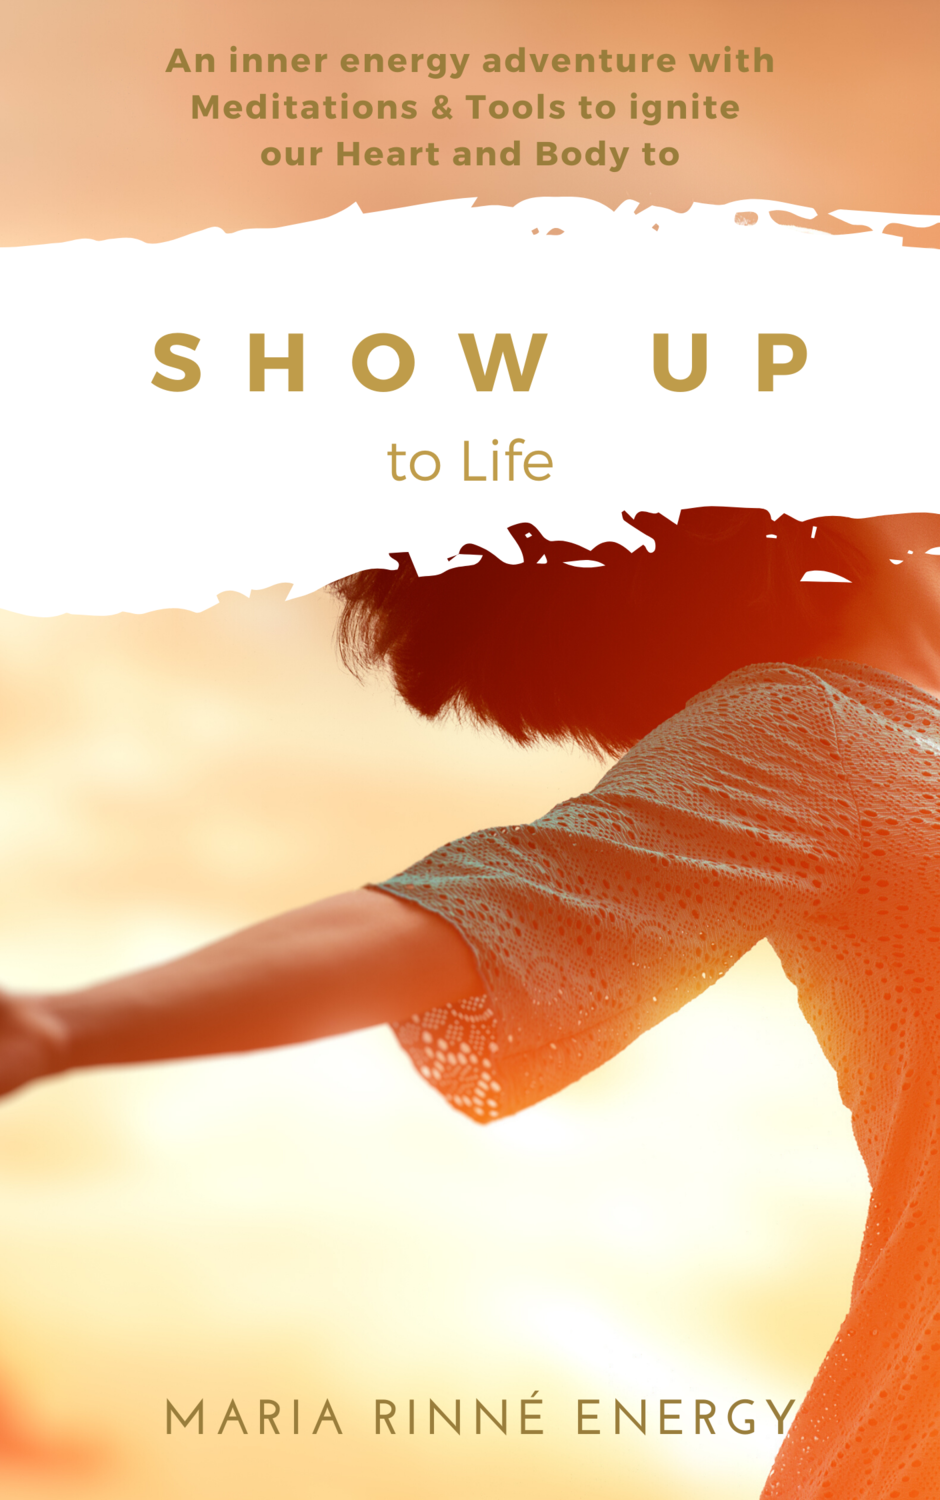 Show-up to life -  eBook with igniting meditations